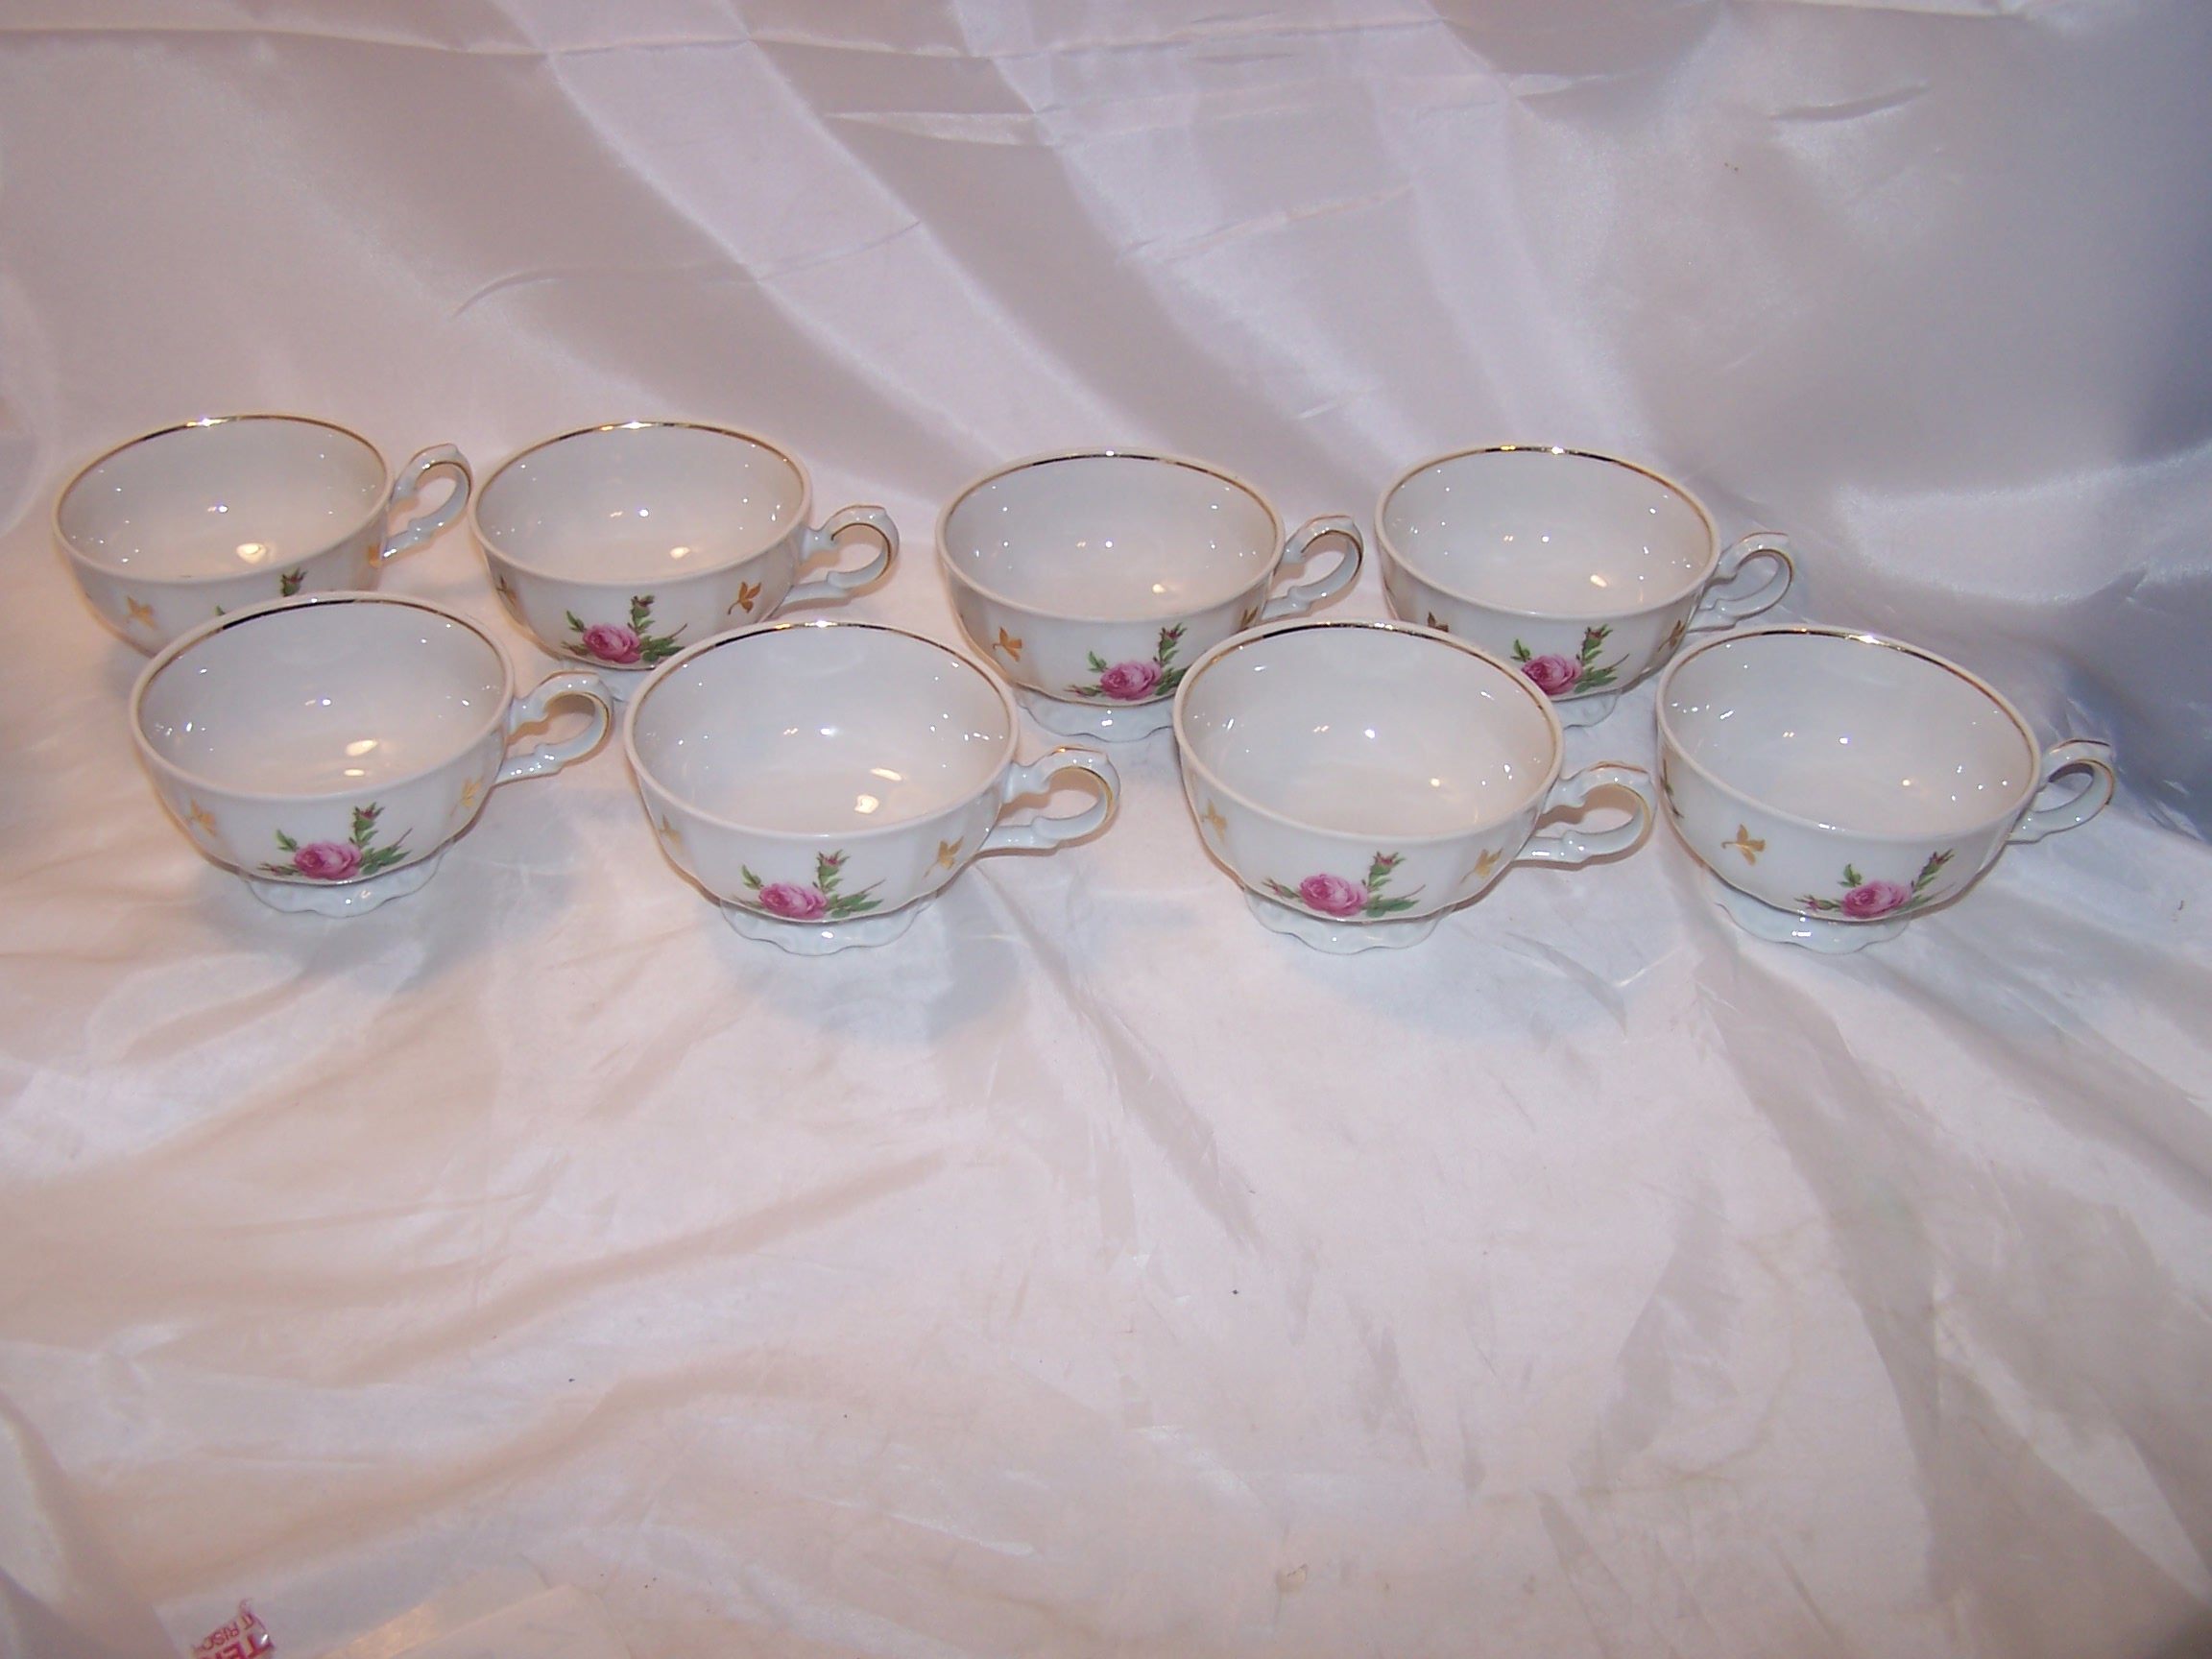 Image 5 of Bareuther Bavaria Dessert Service for 8, Germany, ca 1931 to 1950